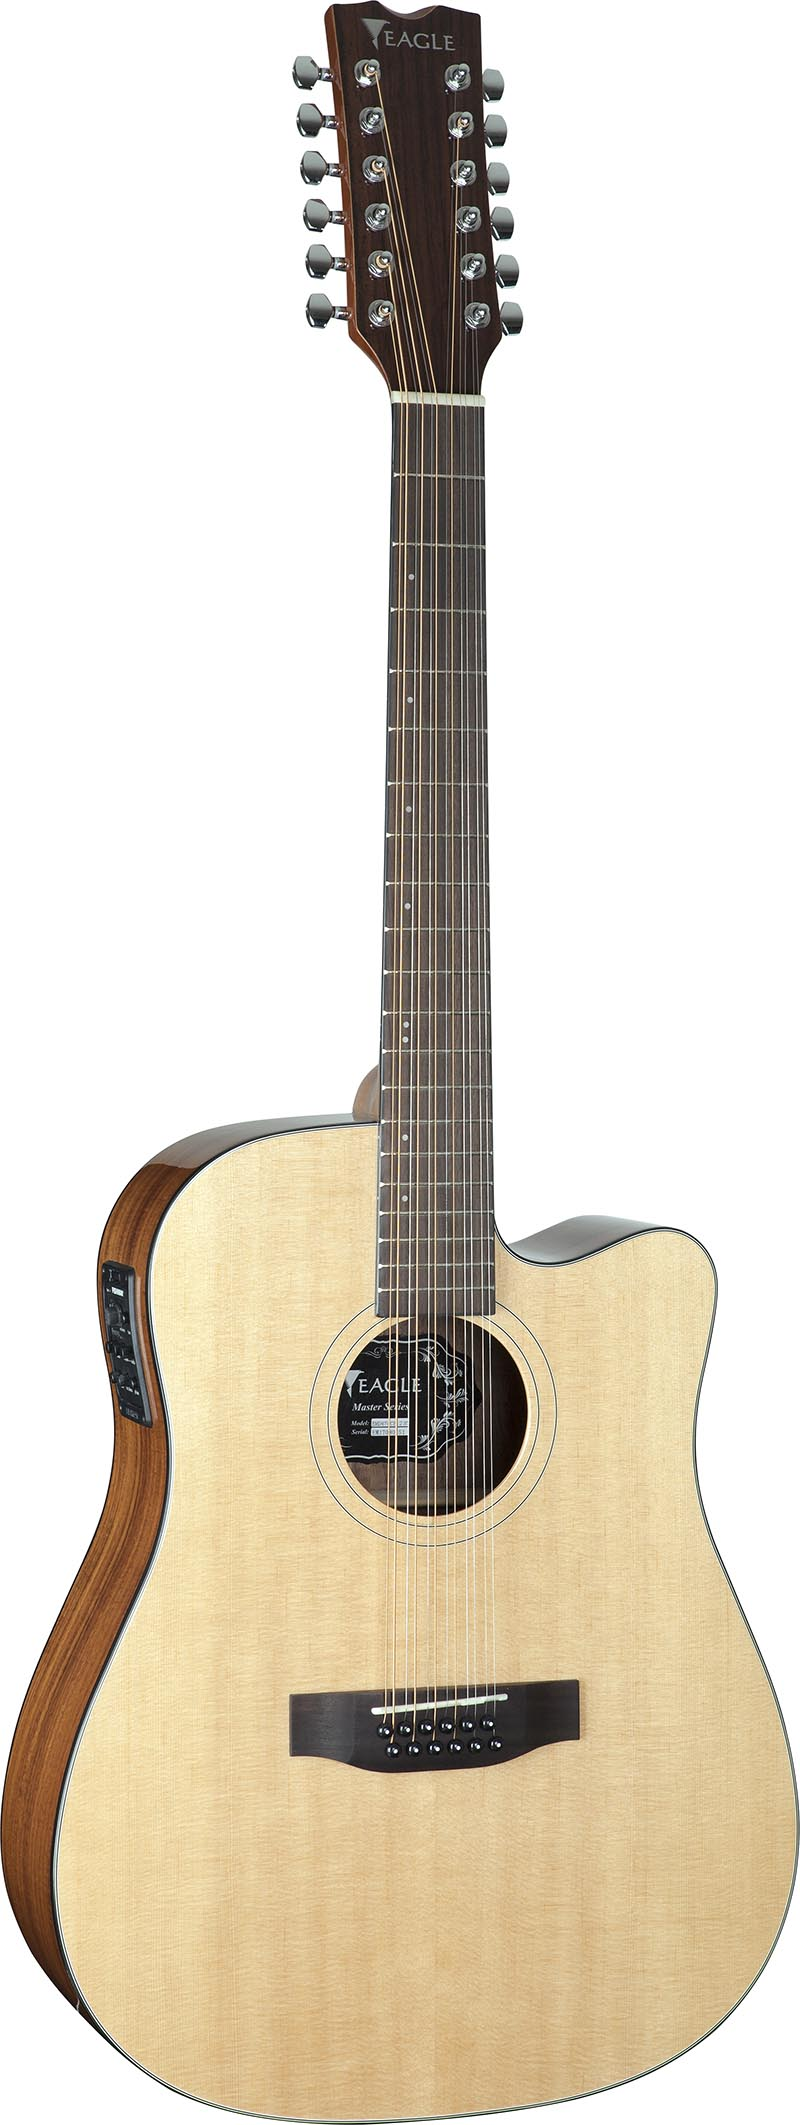 emd470ce12 violao folk dreadnought tampo solido eagle emd470ce12 nt natural visao frontal vertical